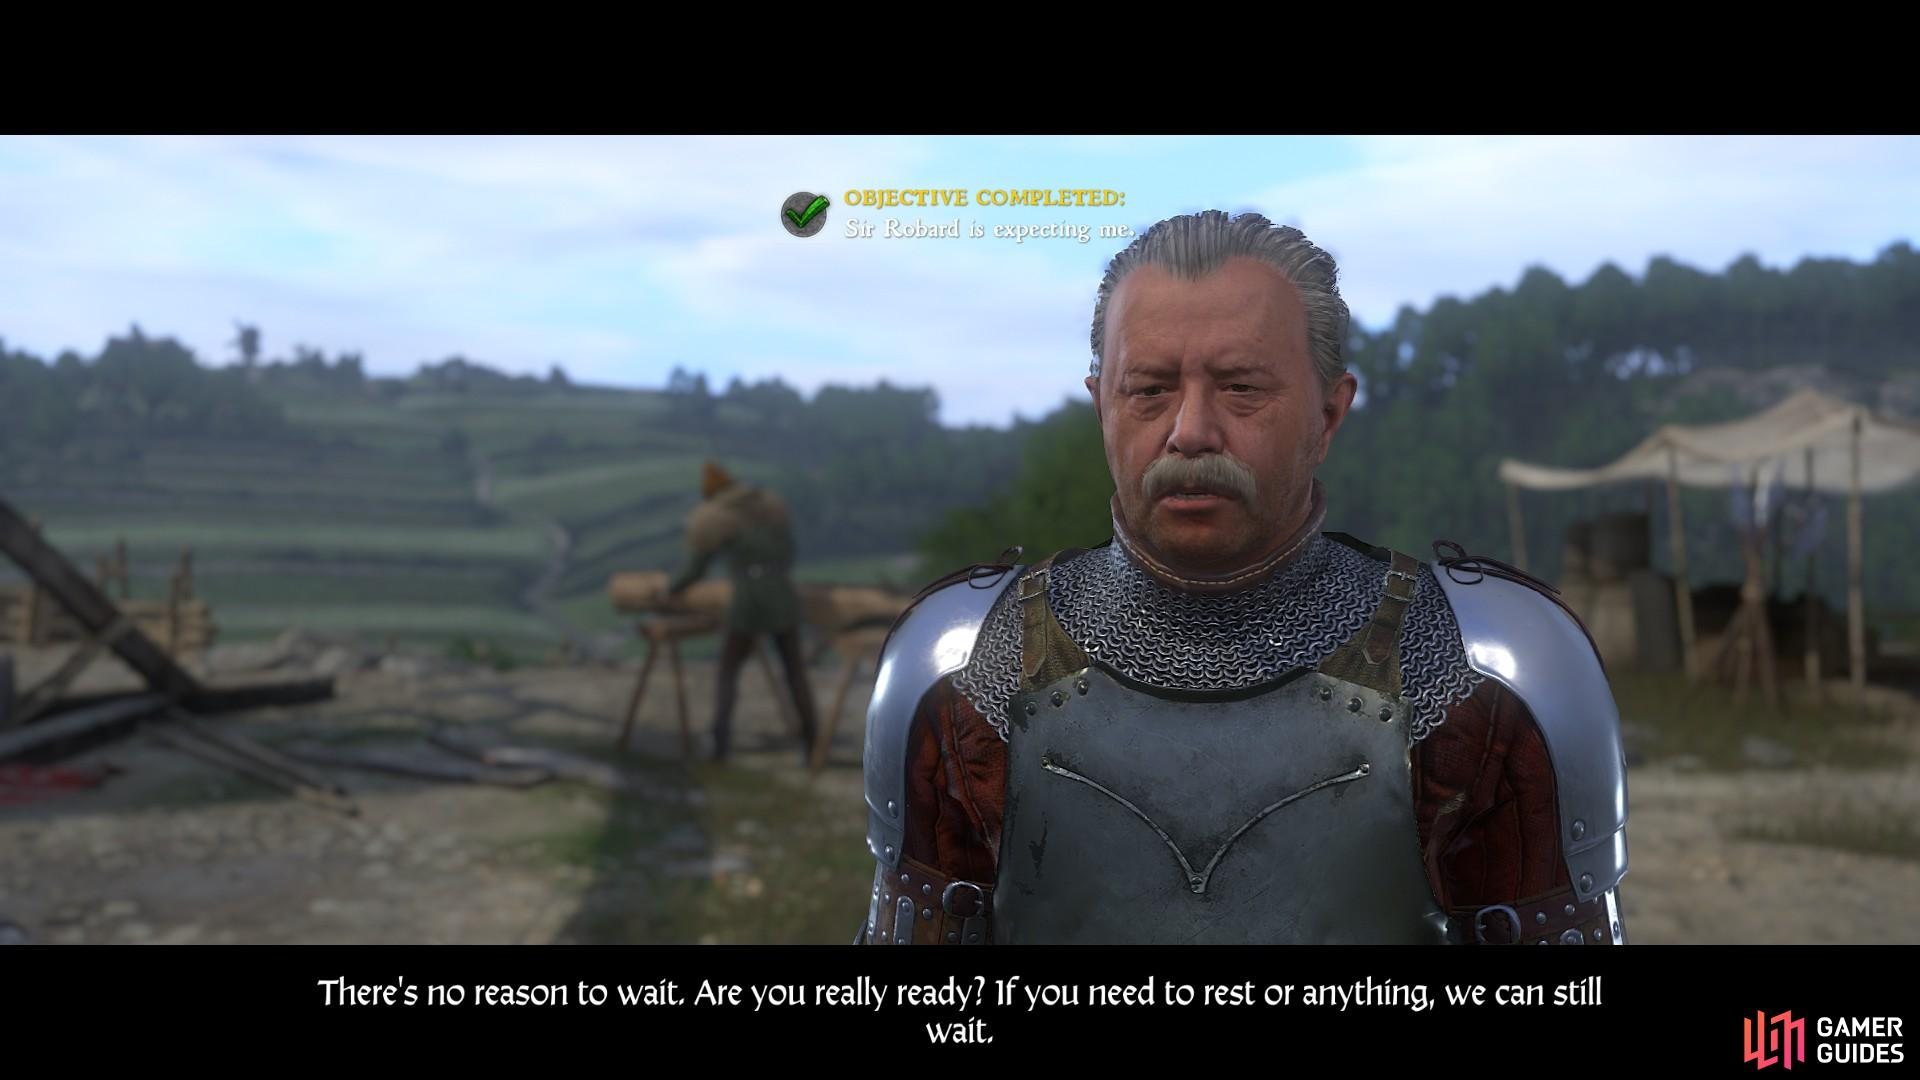 Be sure that you are fully rested, nourished and battle ready before you speak with Sir Robard to begin the siege.